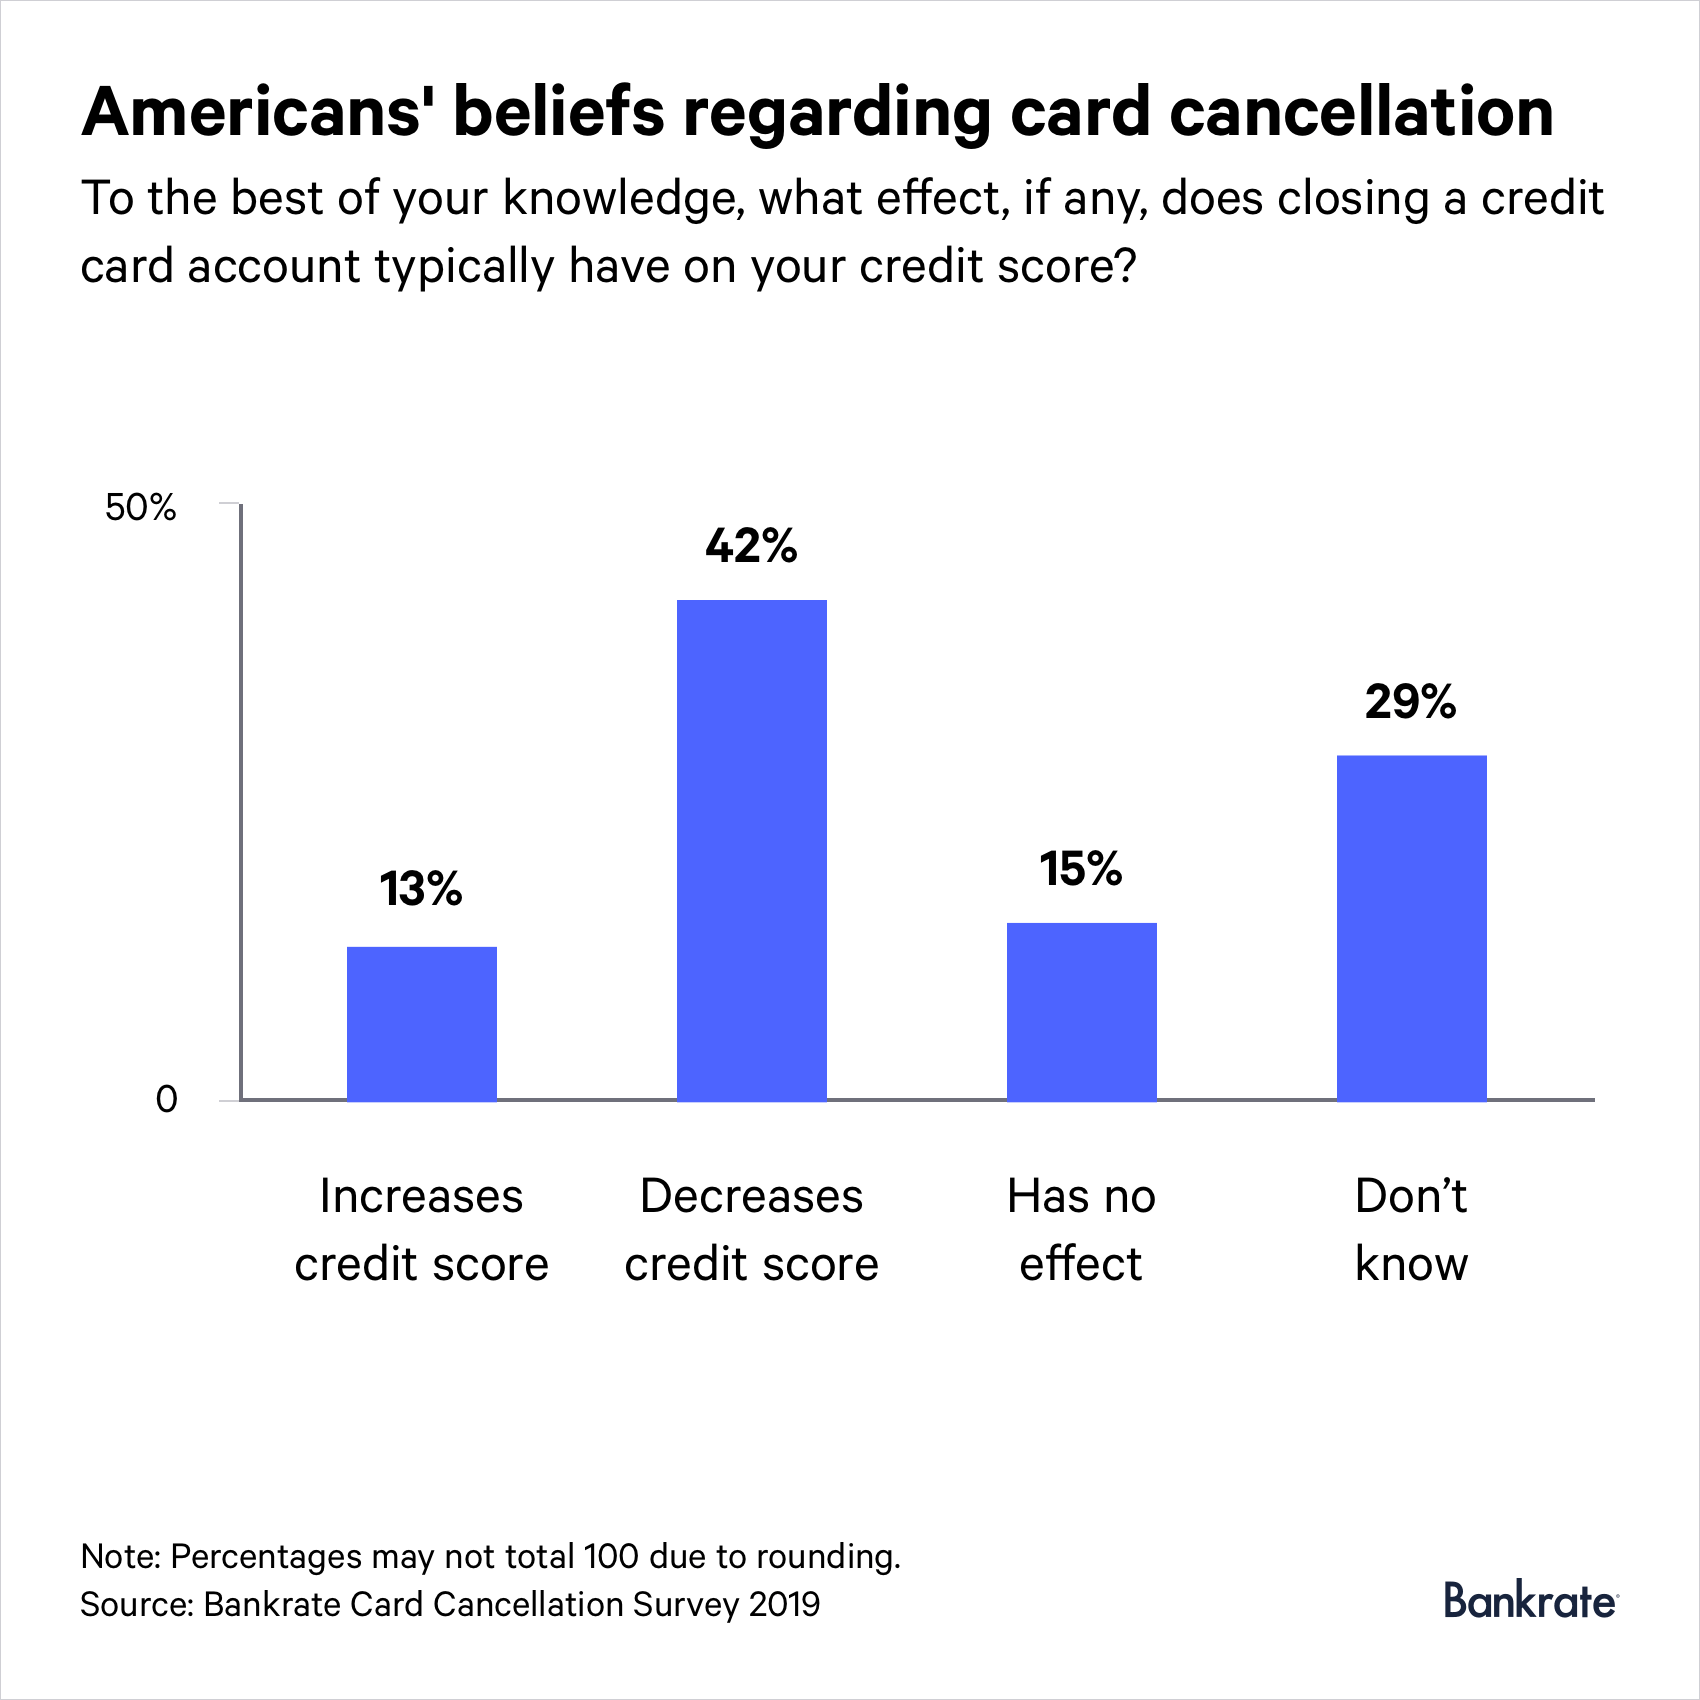 42% of respondents believe that closing a credit card will decrease their credit score